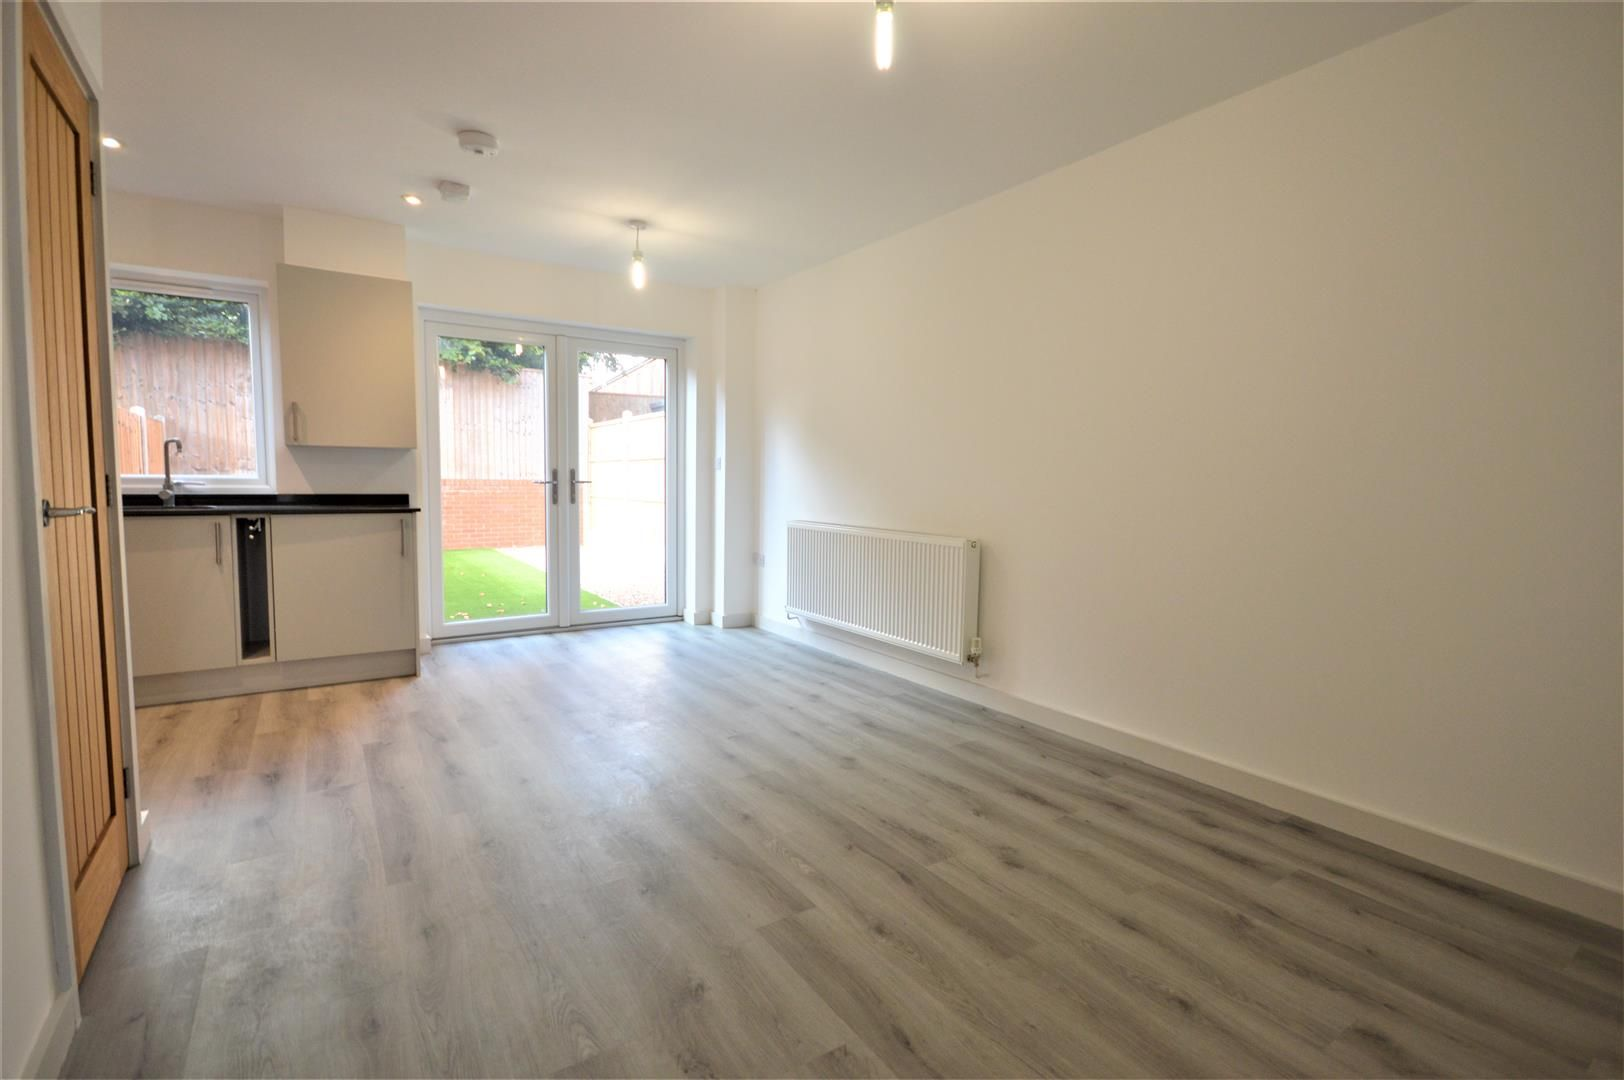 2 bed semi-detached for sale in Leominster 5